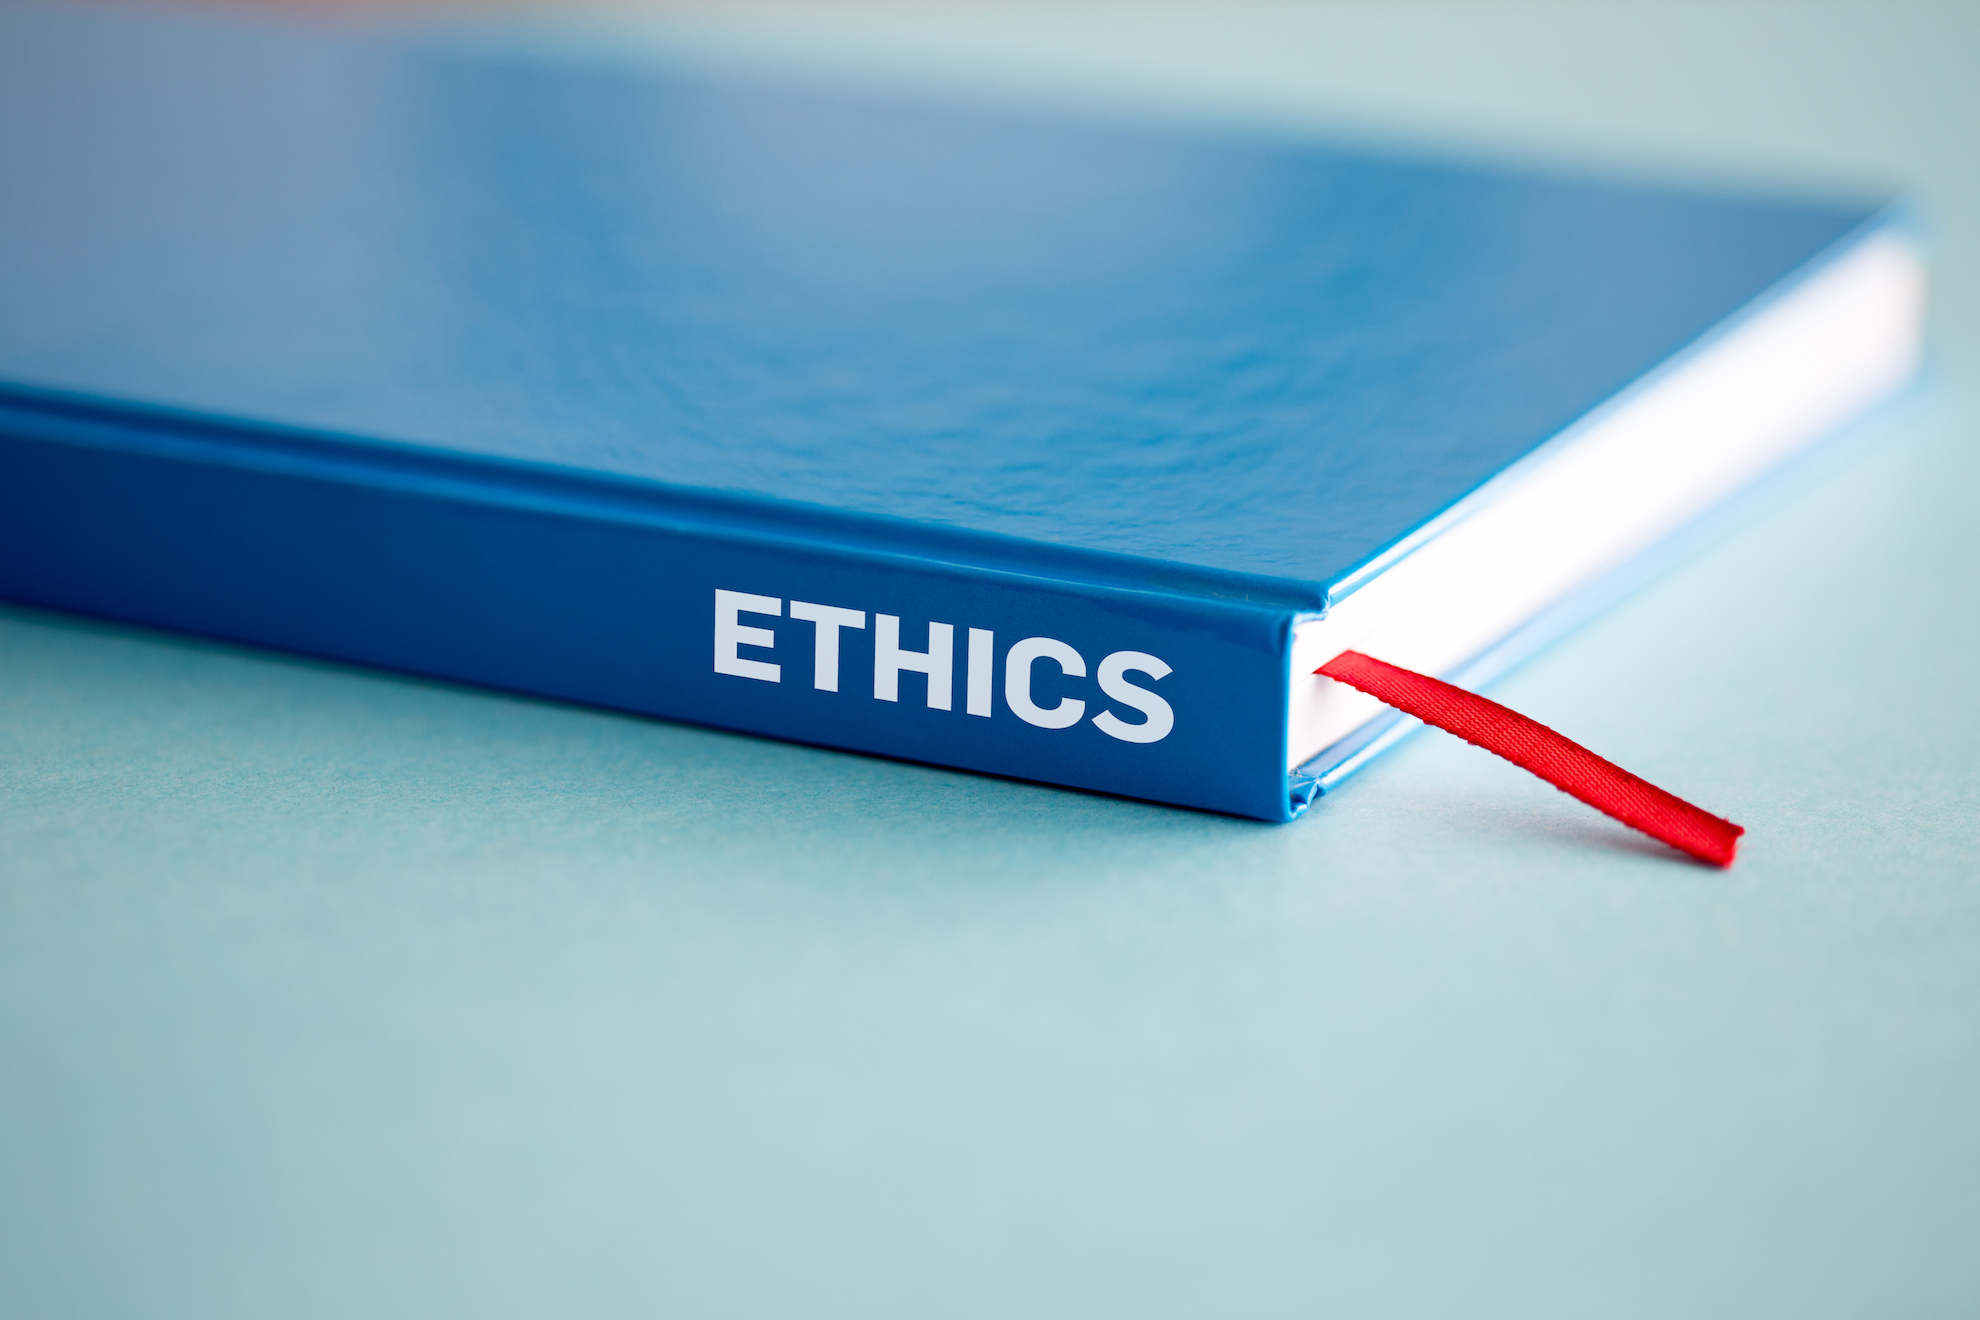 closeup of book titled Ethics